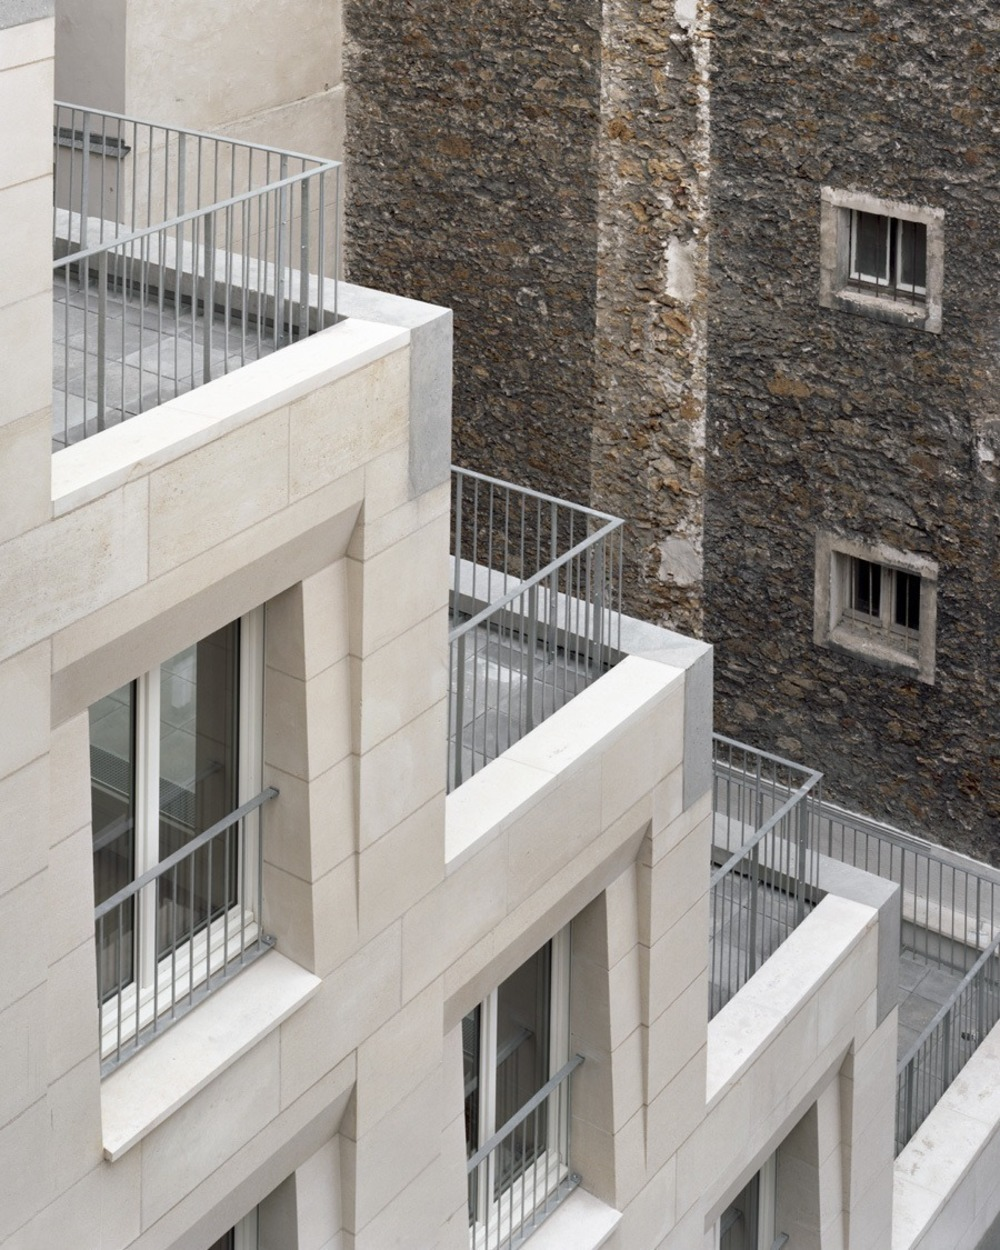 Alternate view of the social housing project in Paris